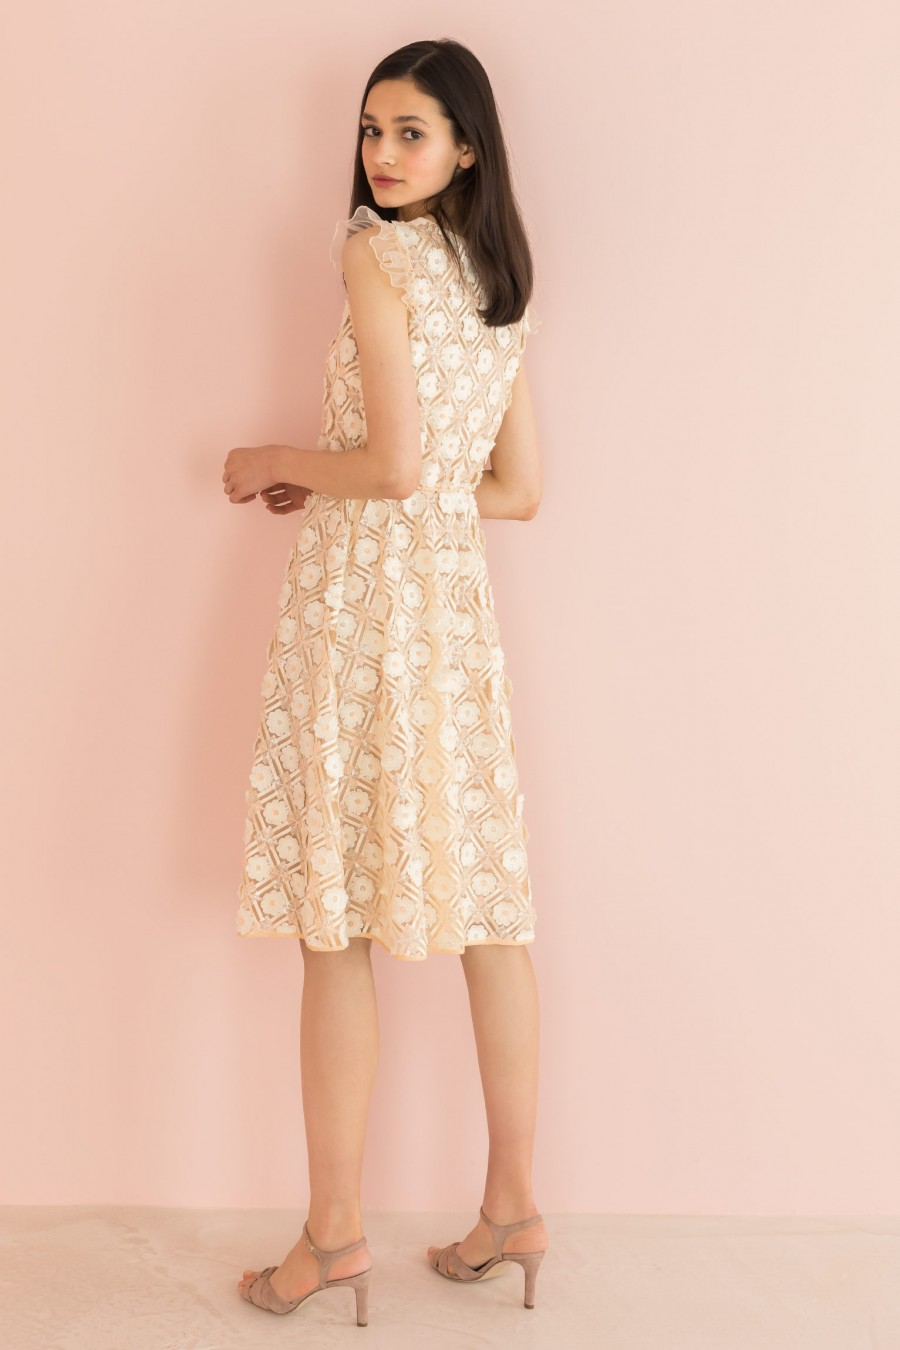 cream dress with ruffle on the shoulders